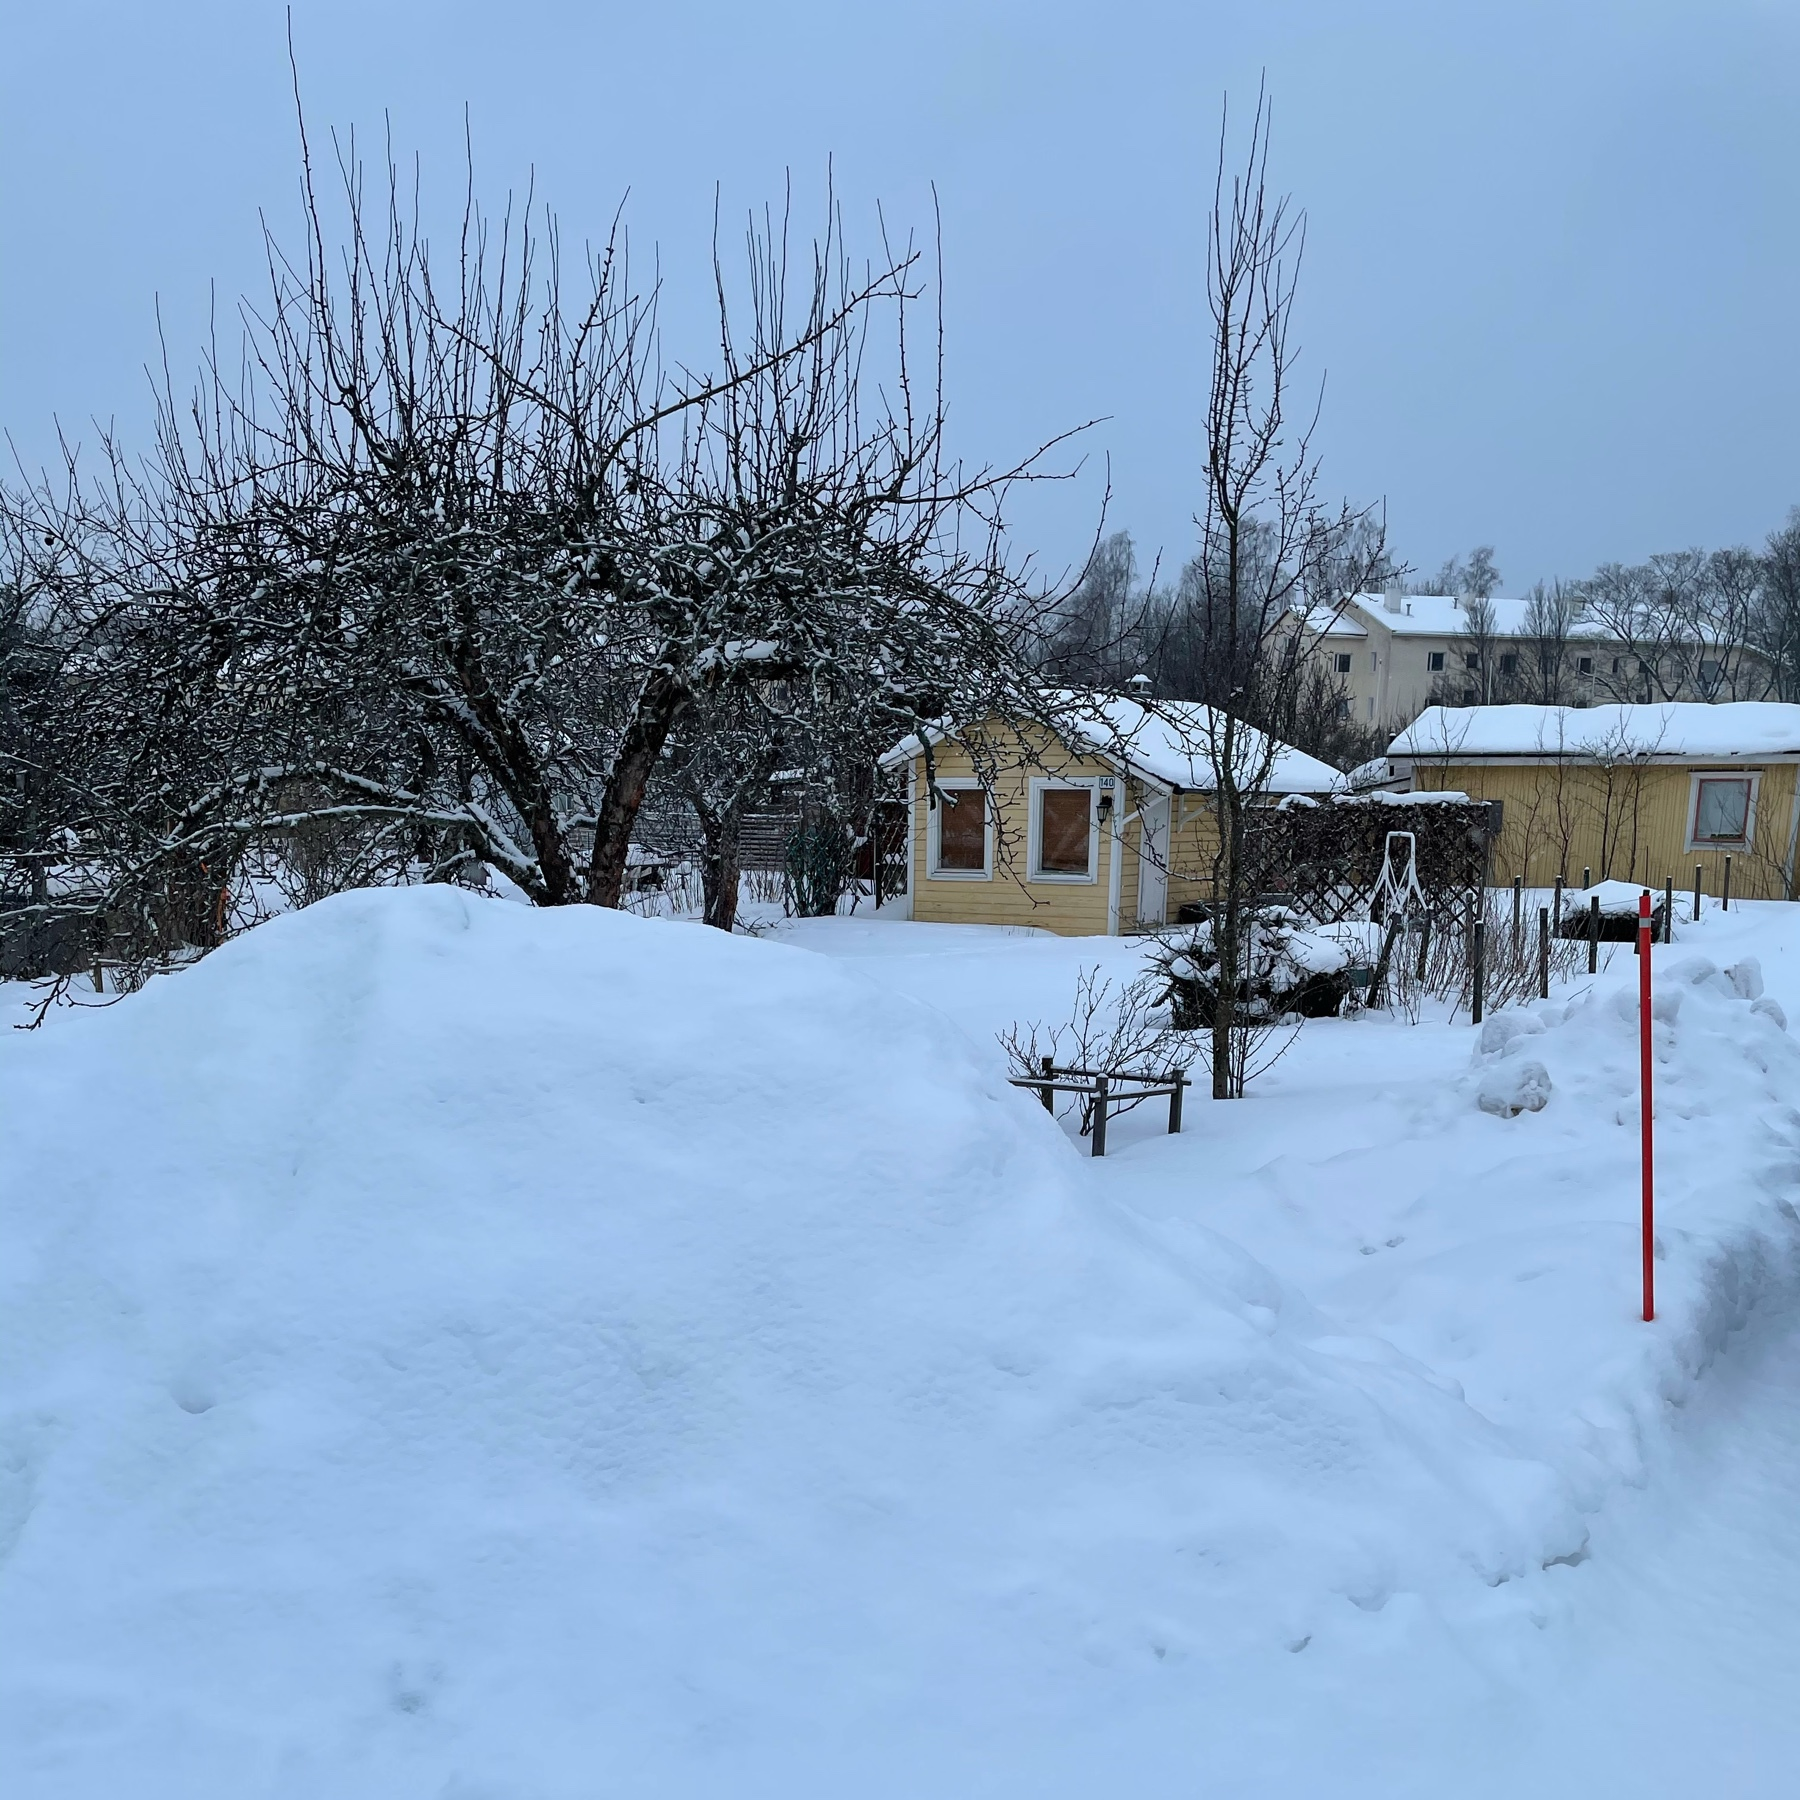 pile of snow, a cabin